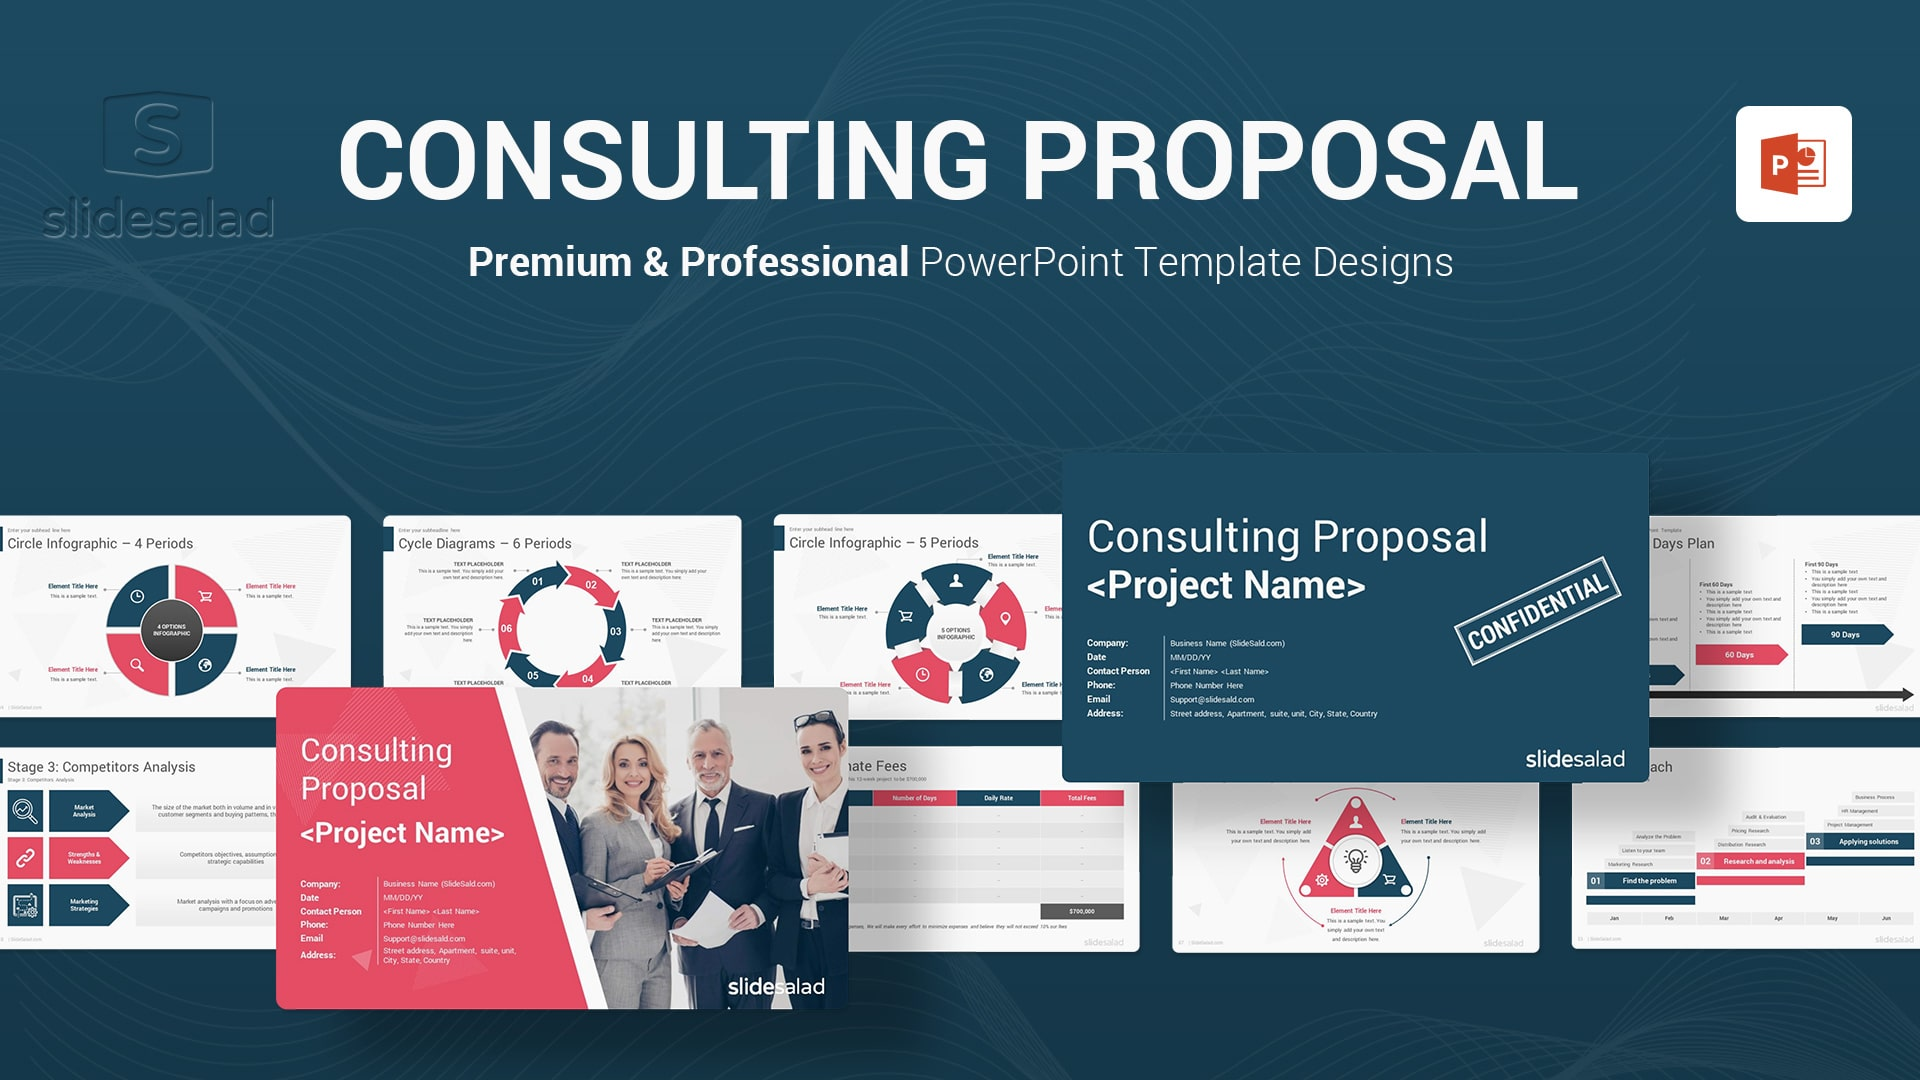 Best Consulting Proposal PowerPoint Template - Best Webinar Presentation Template for PowerPoint